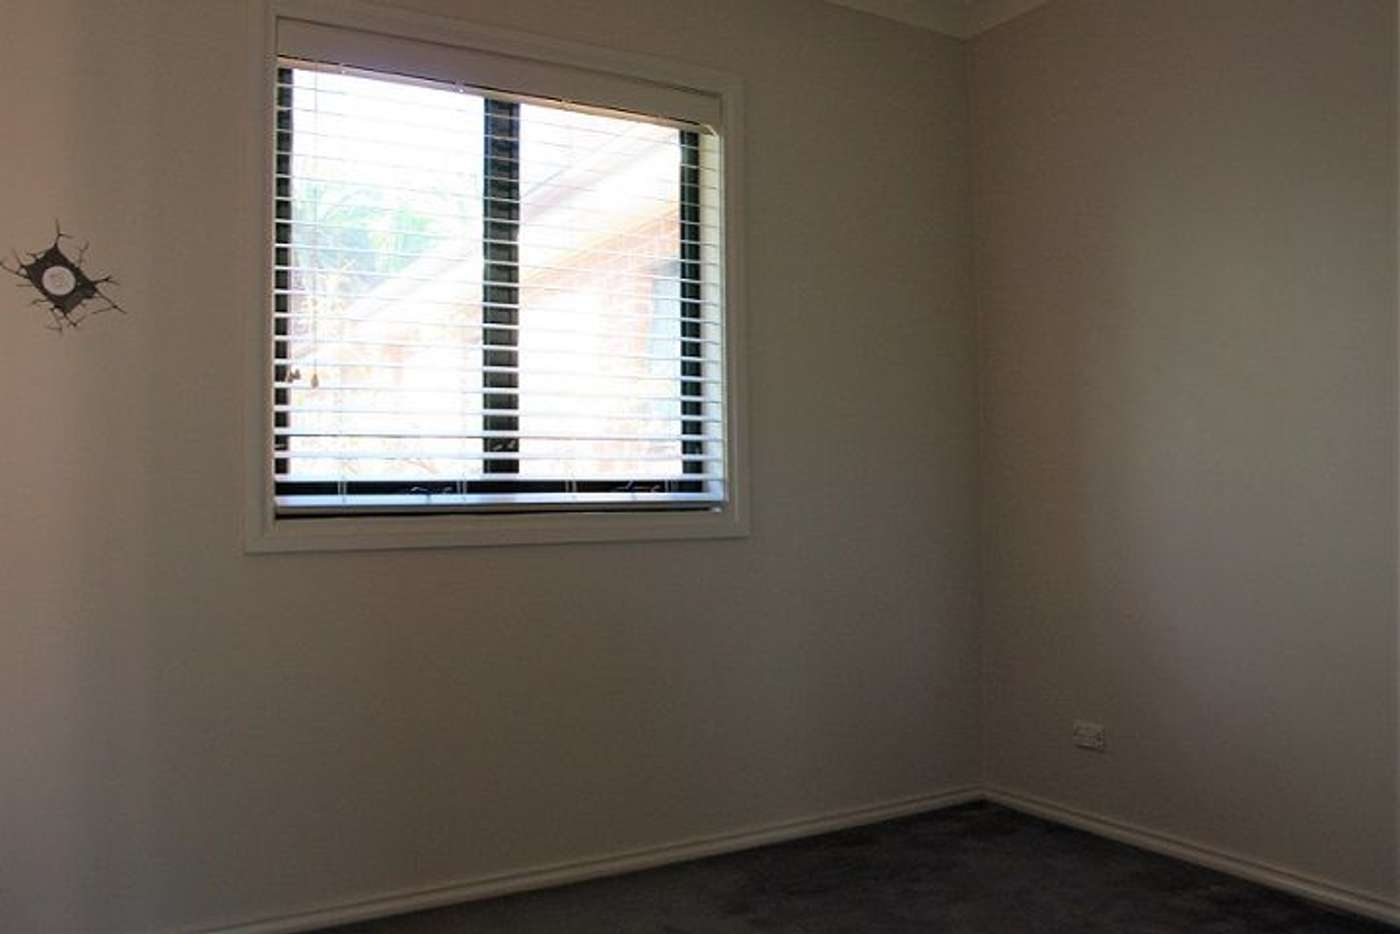 Sixth view of Homely house listing, 8/52-56 Broughton Street, Camden NSW 2570